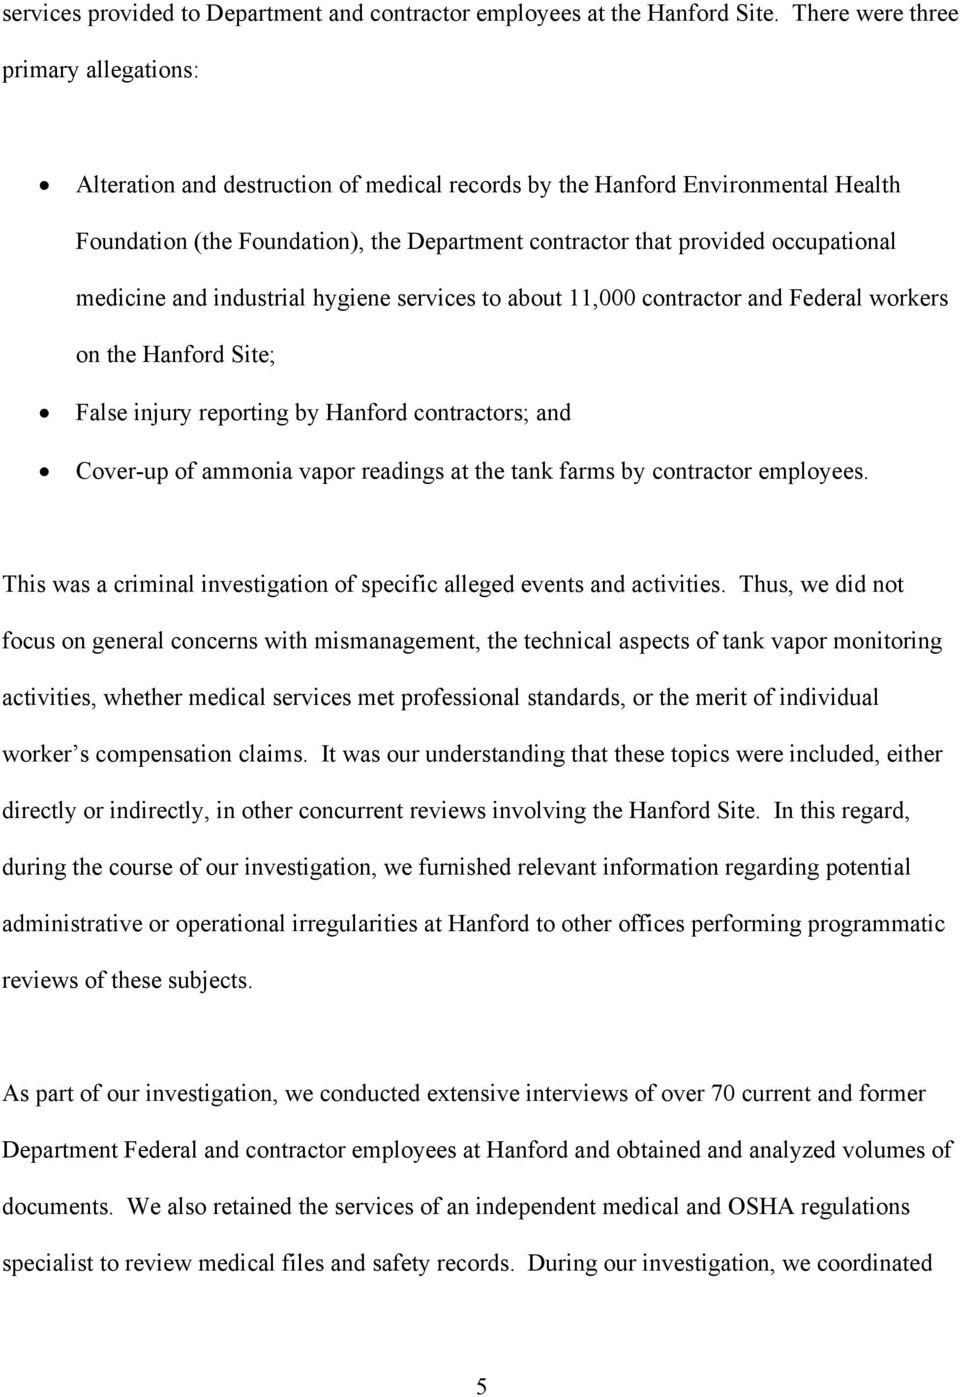 occupational medicine and industrial hygiene services to about 11,000 contractor and Federal workers on the Hanford Site; False injury reporting by Hanford contractors; and Cover-up of ammonia vapor